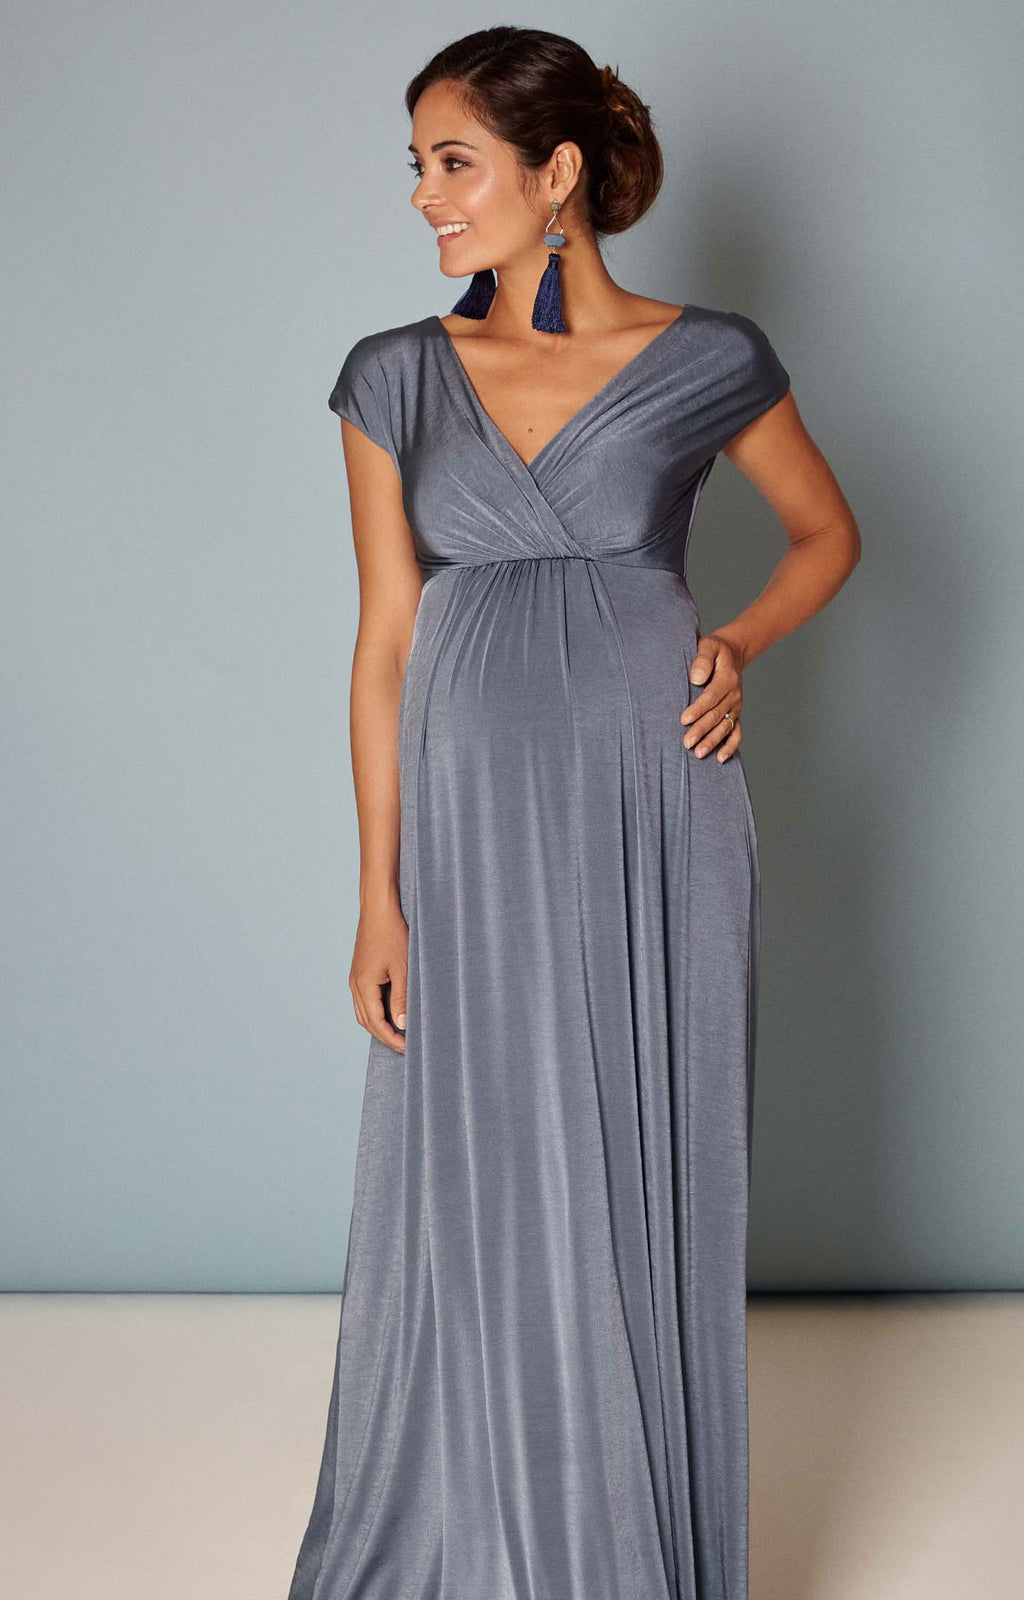 Tiffany Rose Francesca Blue Maternity and Nursing Gown - Seven Women Maternity